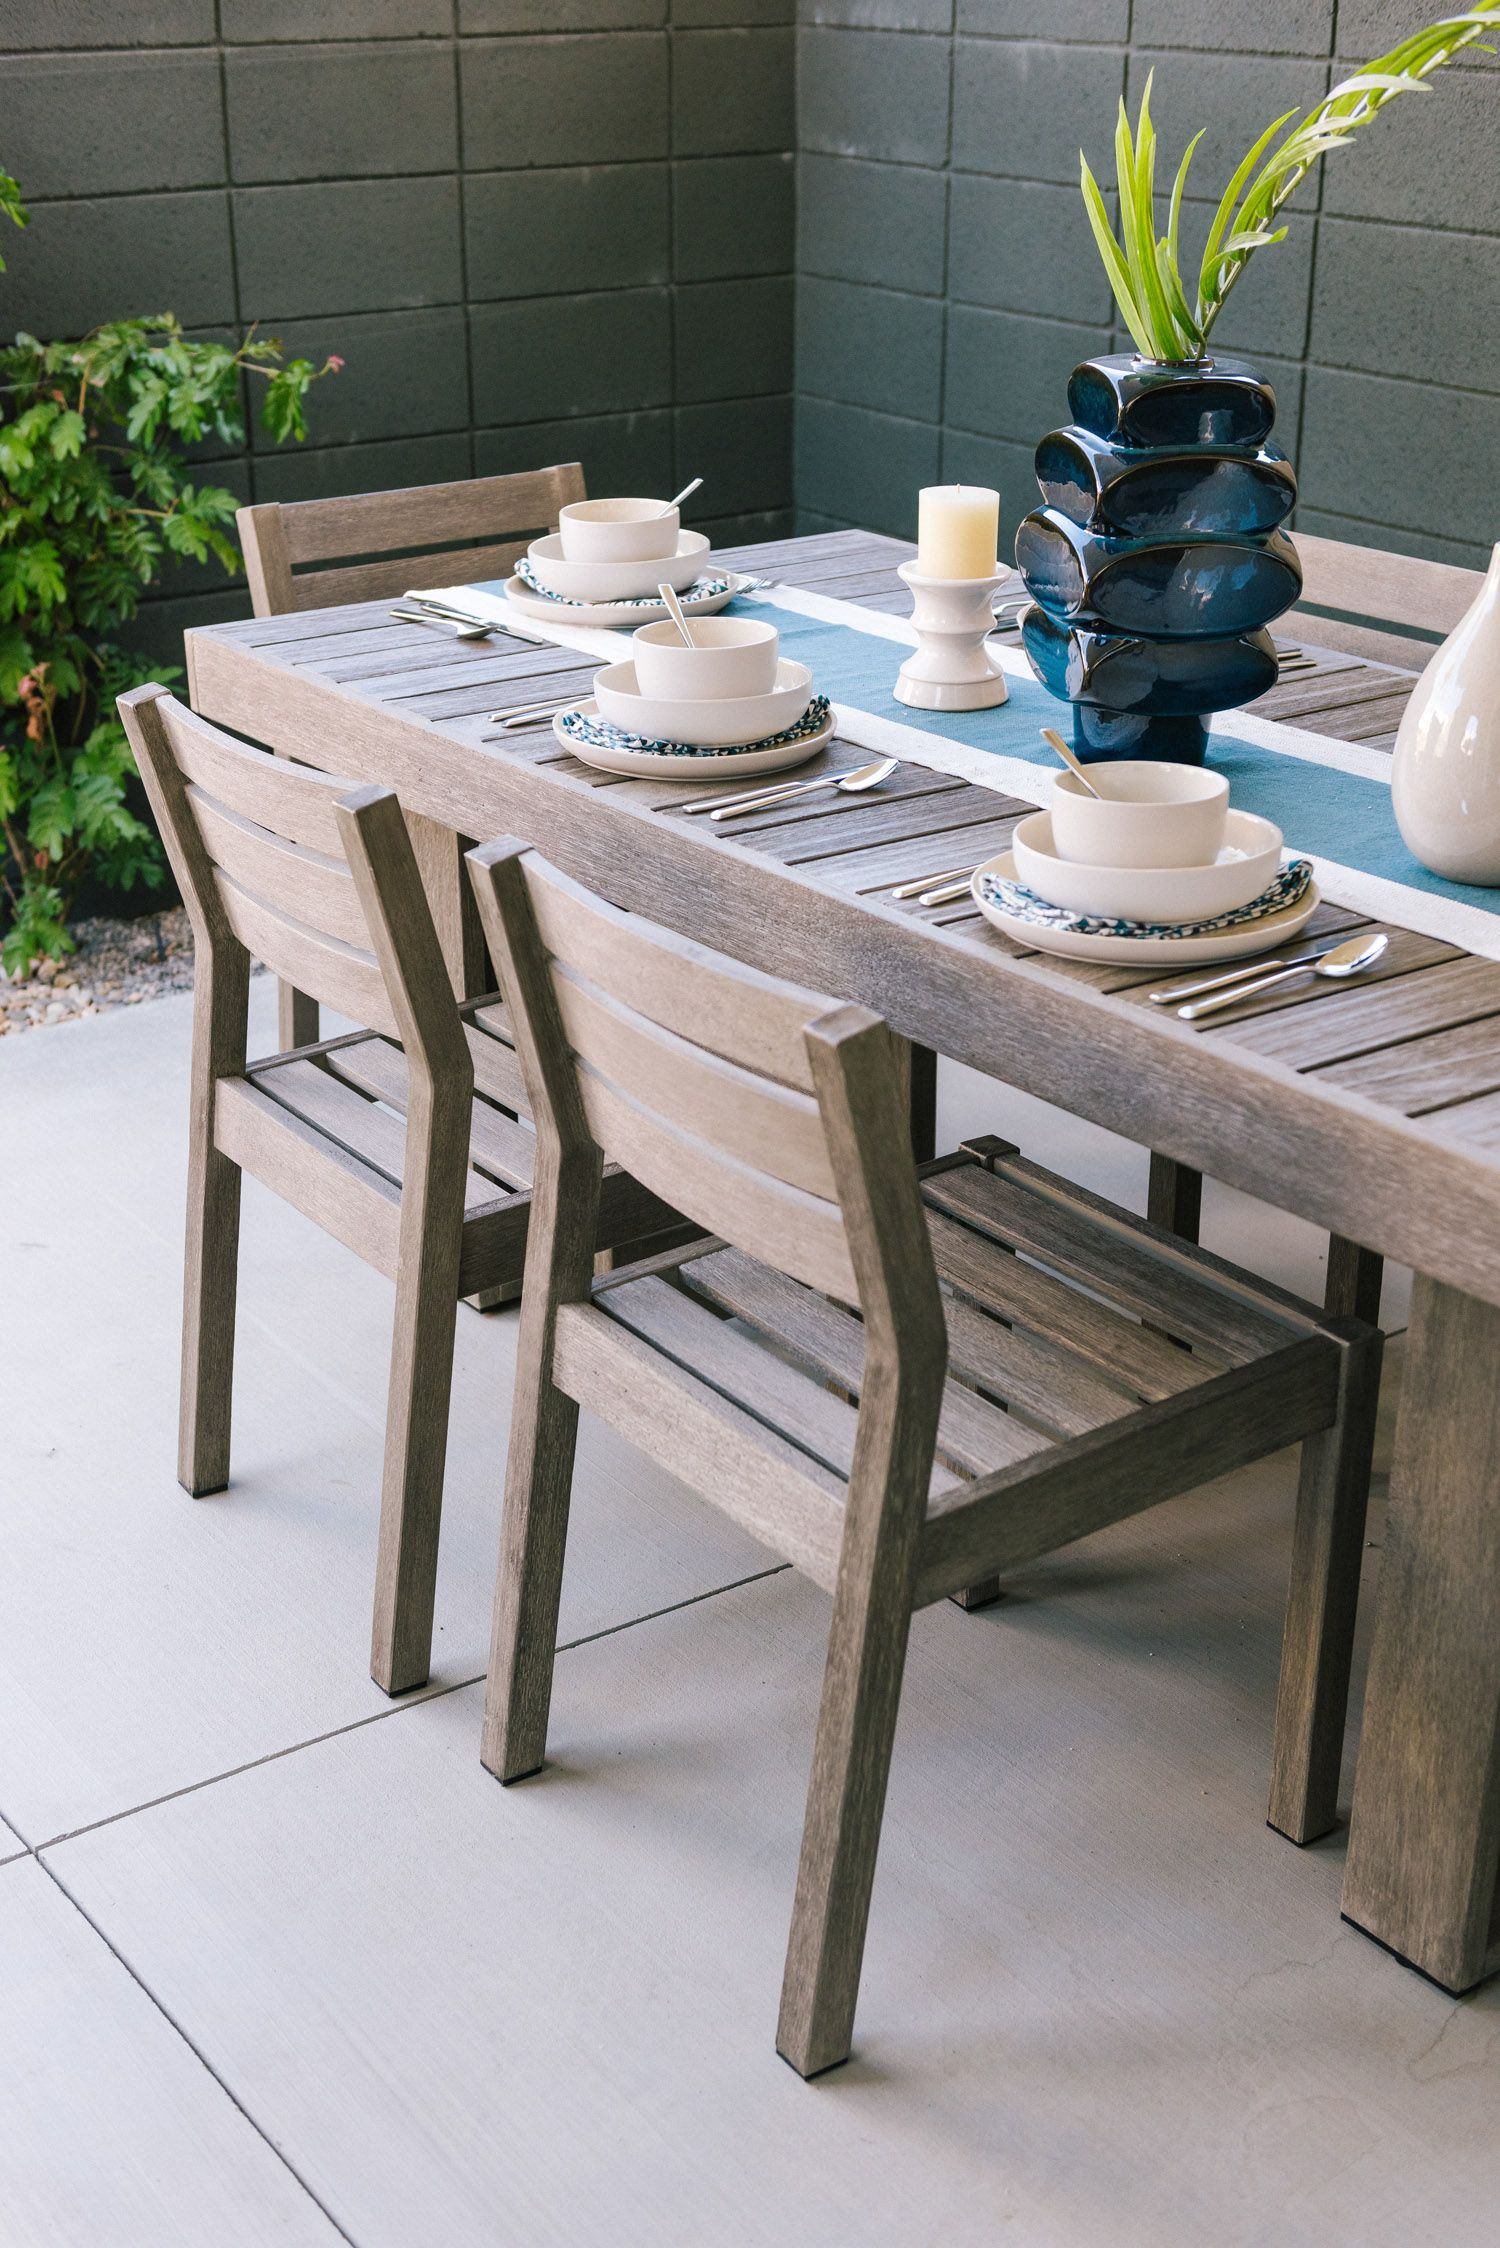 Outdoor Dining Outdoor Dining Furniture Patio Dining Table Patio Dining